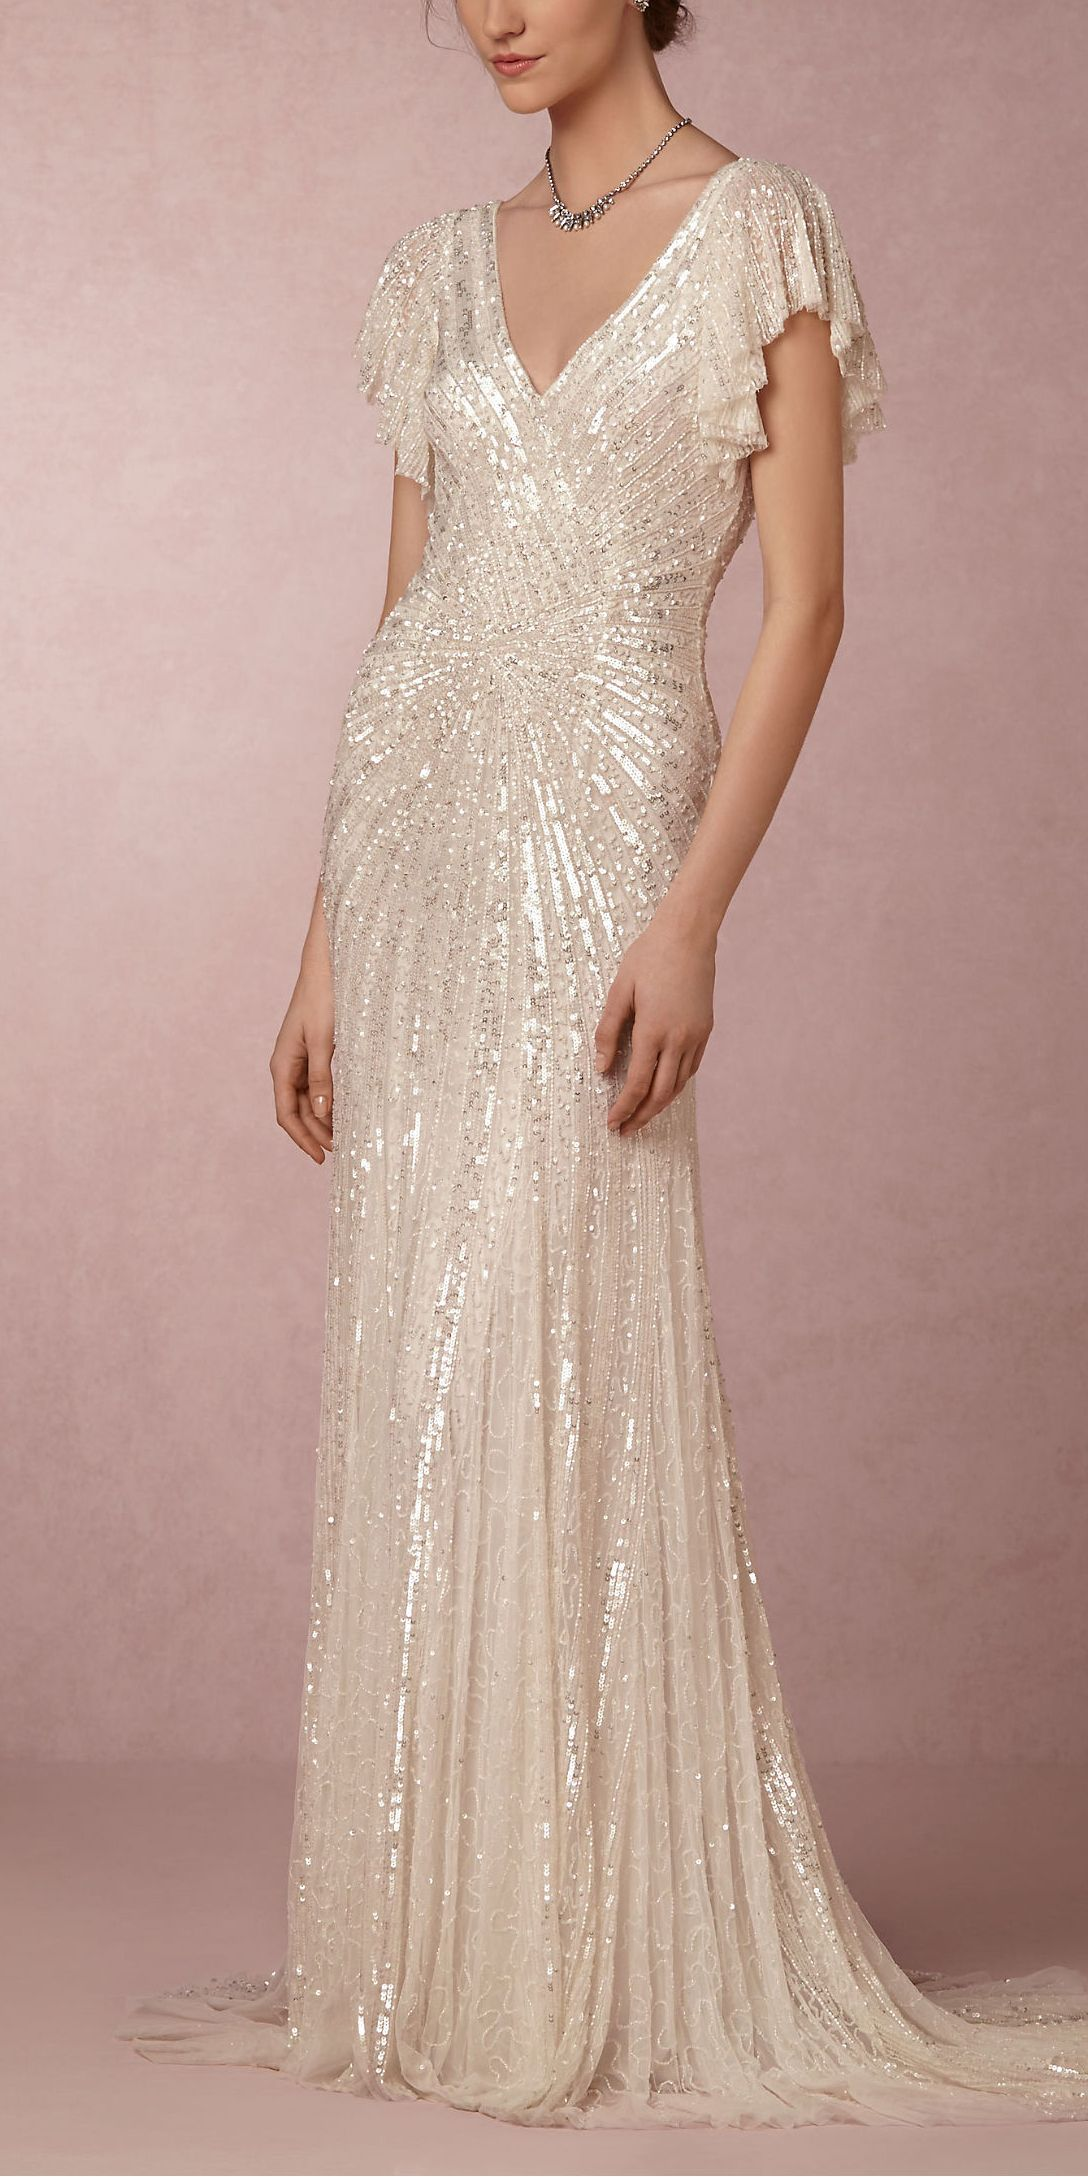 The Wedding Dress Guide for Every Kind of Bride | Wedding Dreams ...